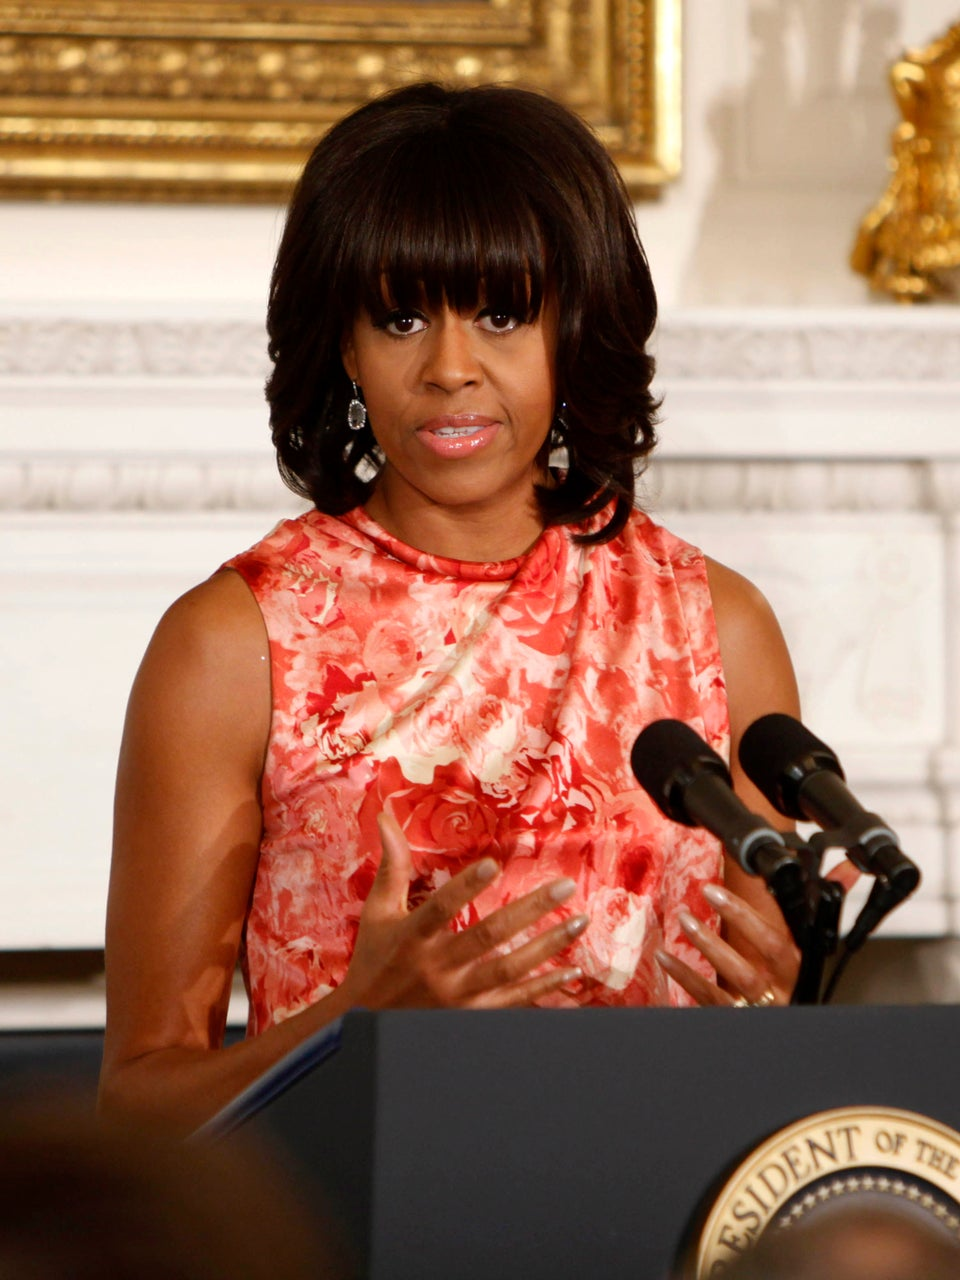 Michelle Obama to Discuss Youth Violence in Chicago